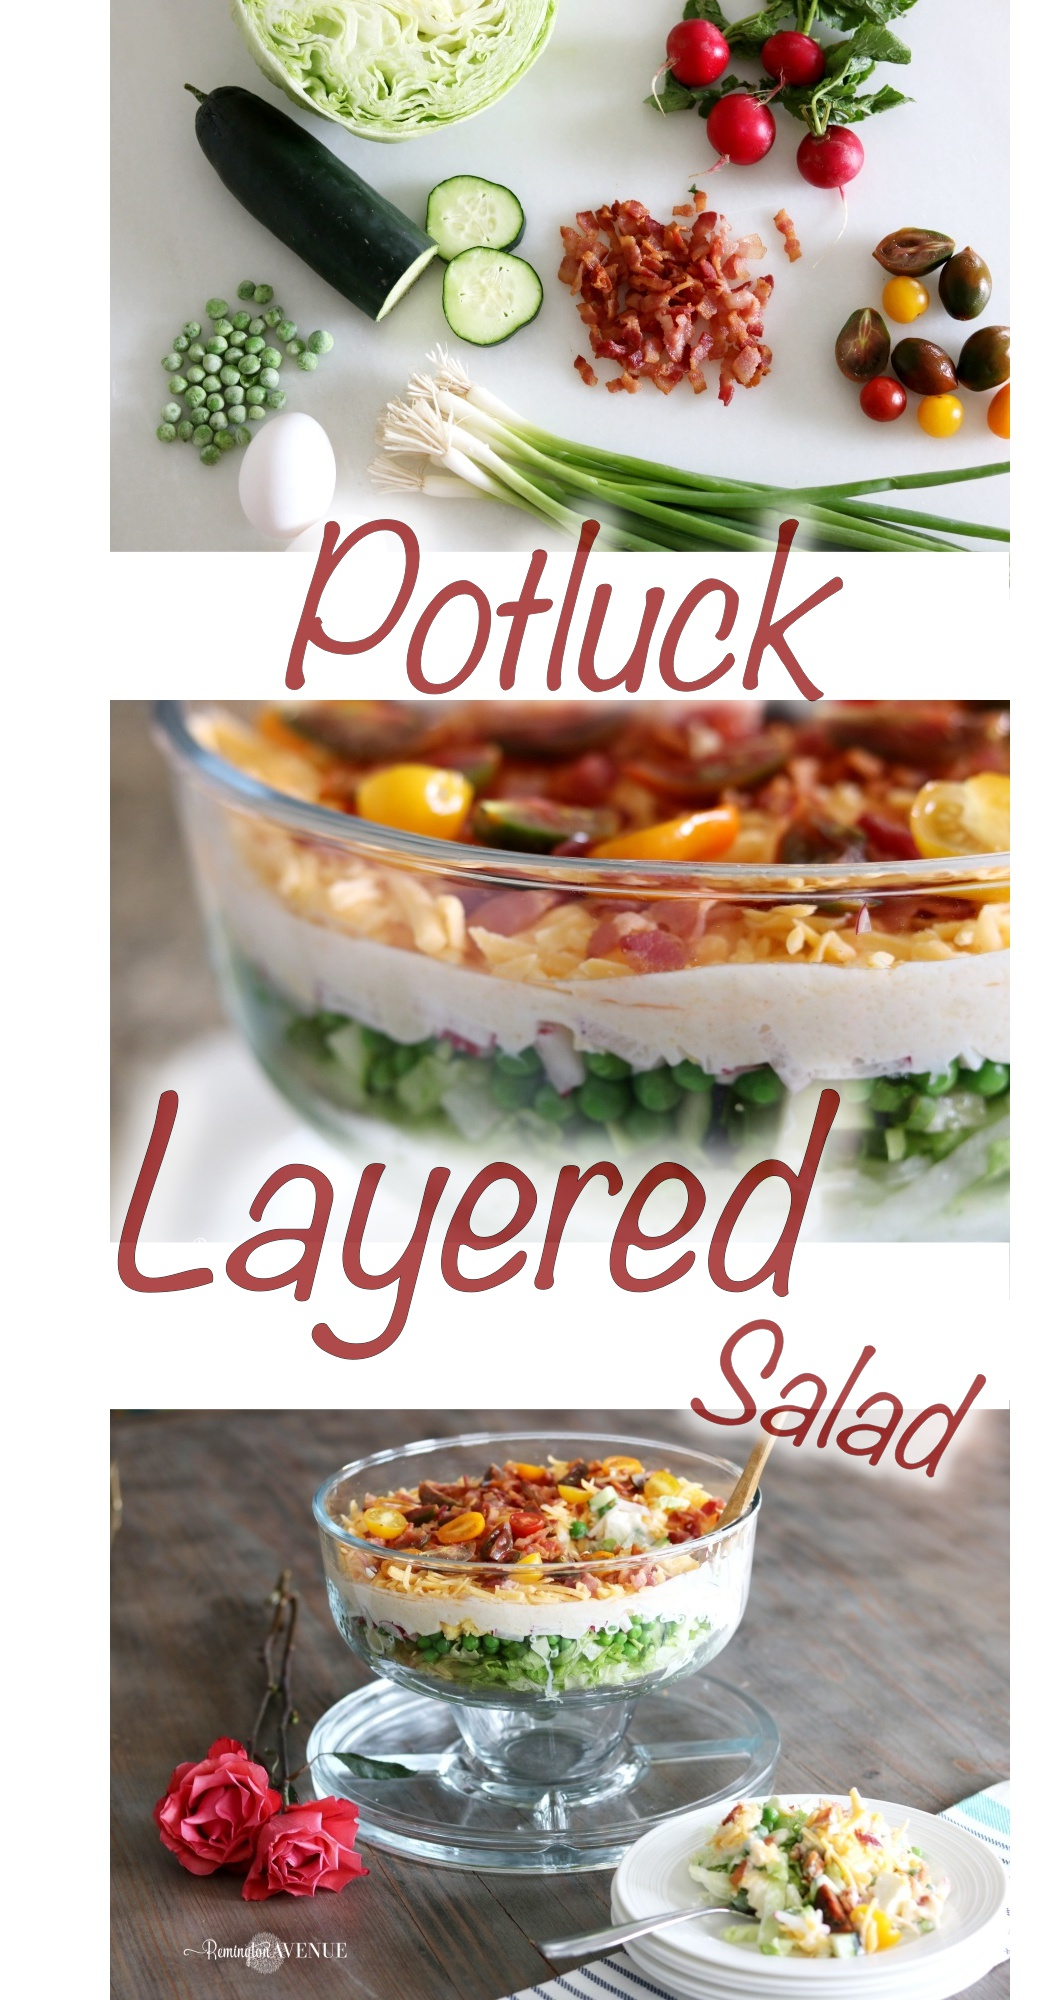 potluck recipe, potluck dish, salad, layered salad, 7 layered salad, mothers day recipe